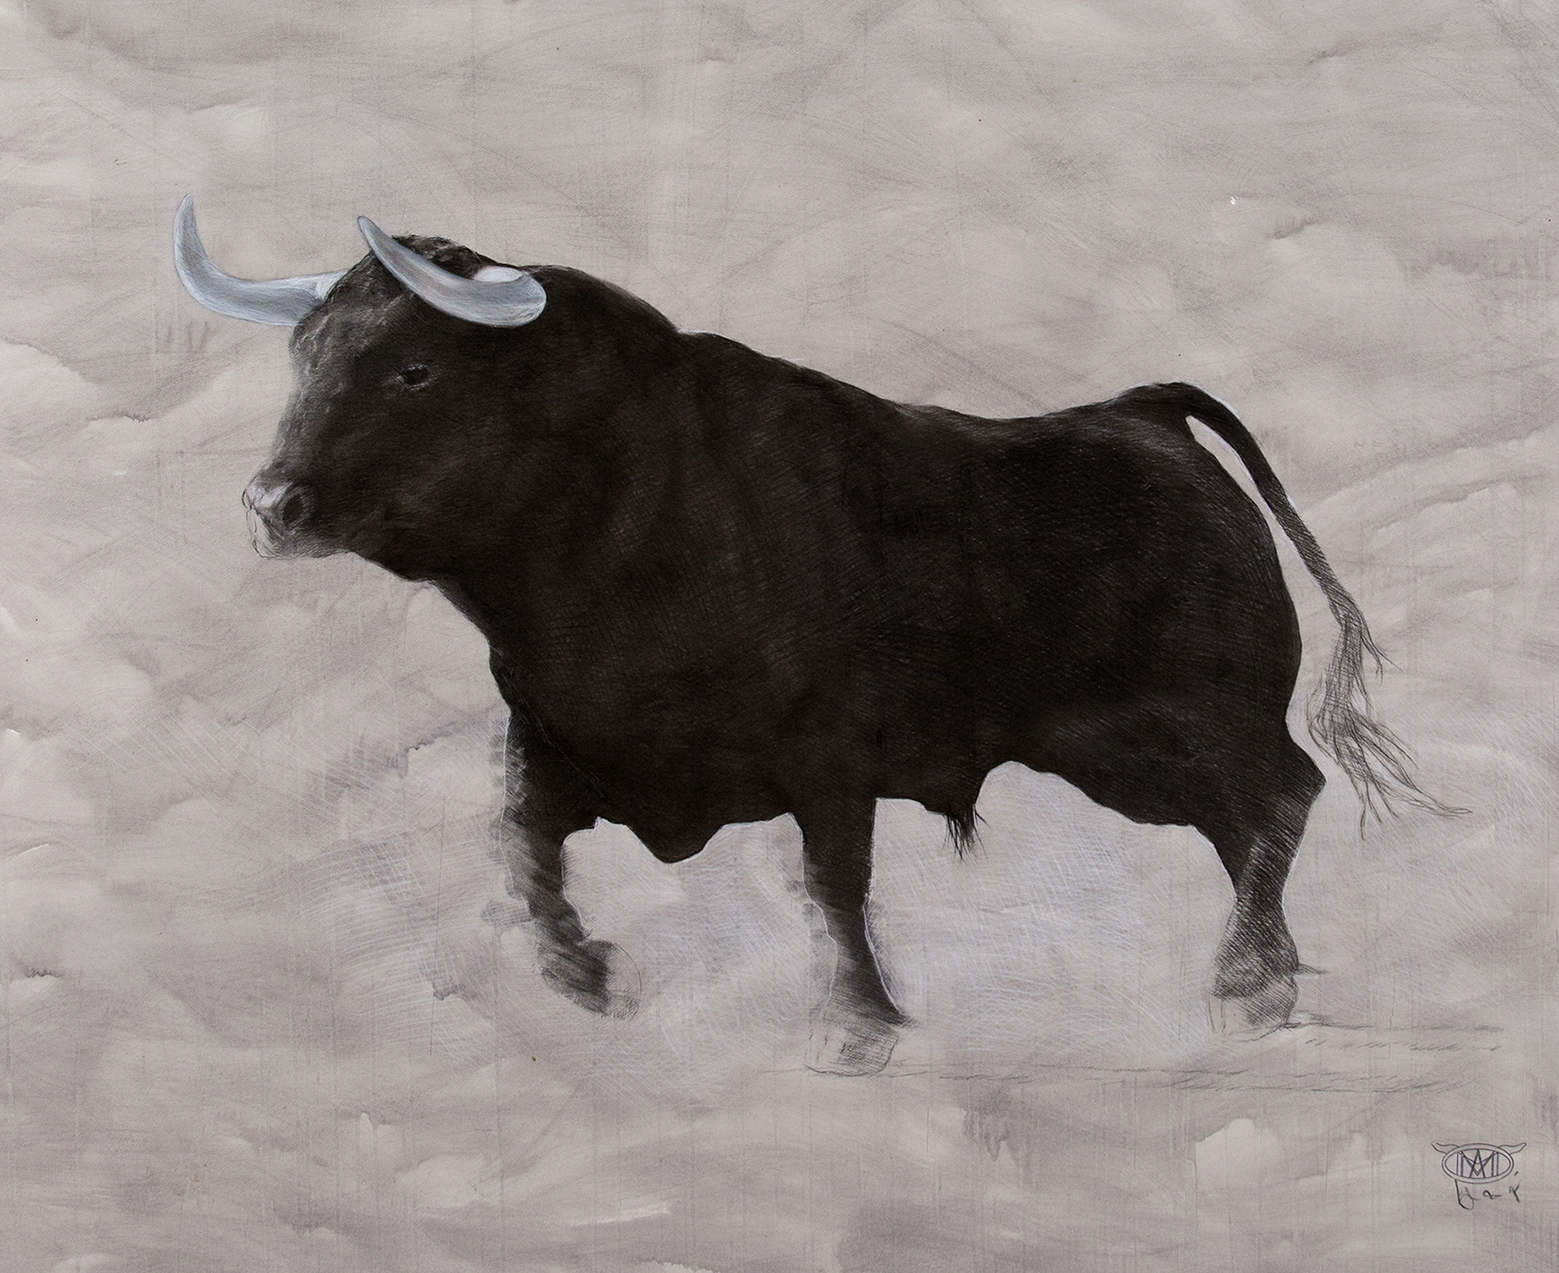 bull  2015 chalk and charcoal on acrylic washed paper  120x 140cm